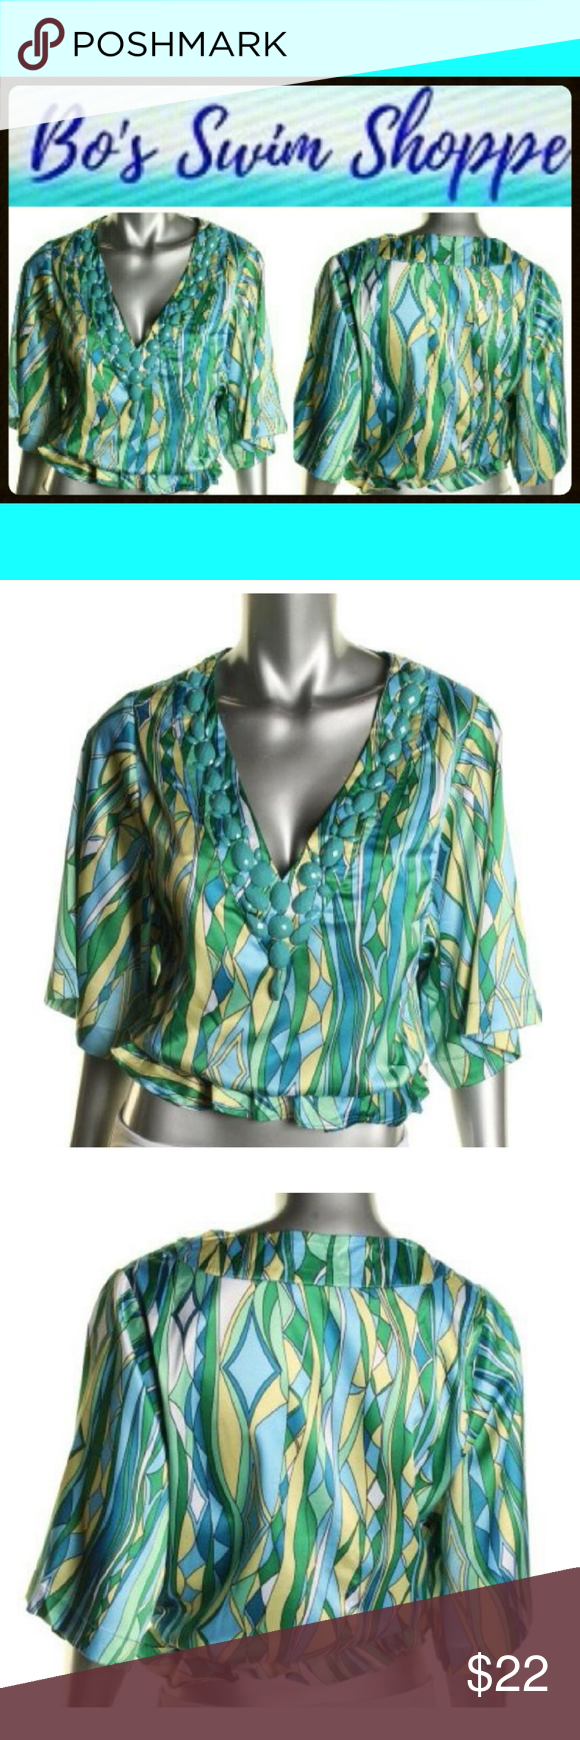 Rachel Lym Green Embellished Cover-Up Top NWT Luxurious satin Beach / Pool / Swimwear, Resortwear. Gorgeous beaded v-neckline details and a light luster highlight this blouse from Rachel Lym. An elastic hem finish this beautiful blouse. BRAND NEW WITH TAGS STILL IN ORIGINAL PACKAGING. WELCOME TO BO'S SWIM SHOPPE: BUY 2 SWIM ITEMS AND GET 25% OFF or  BUY 3 OR MORE ITEMS FROM MY ENTIRE SHOP AND GET 20% OFF. Rachel Lym Tops Coverups